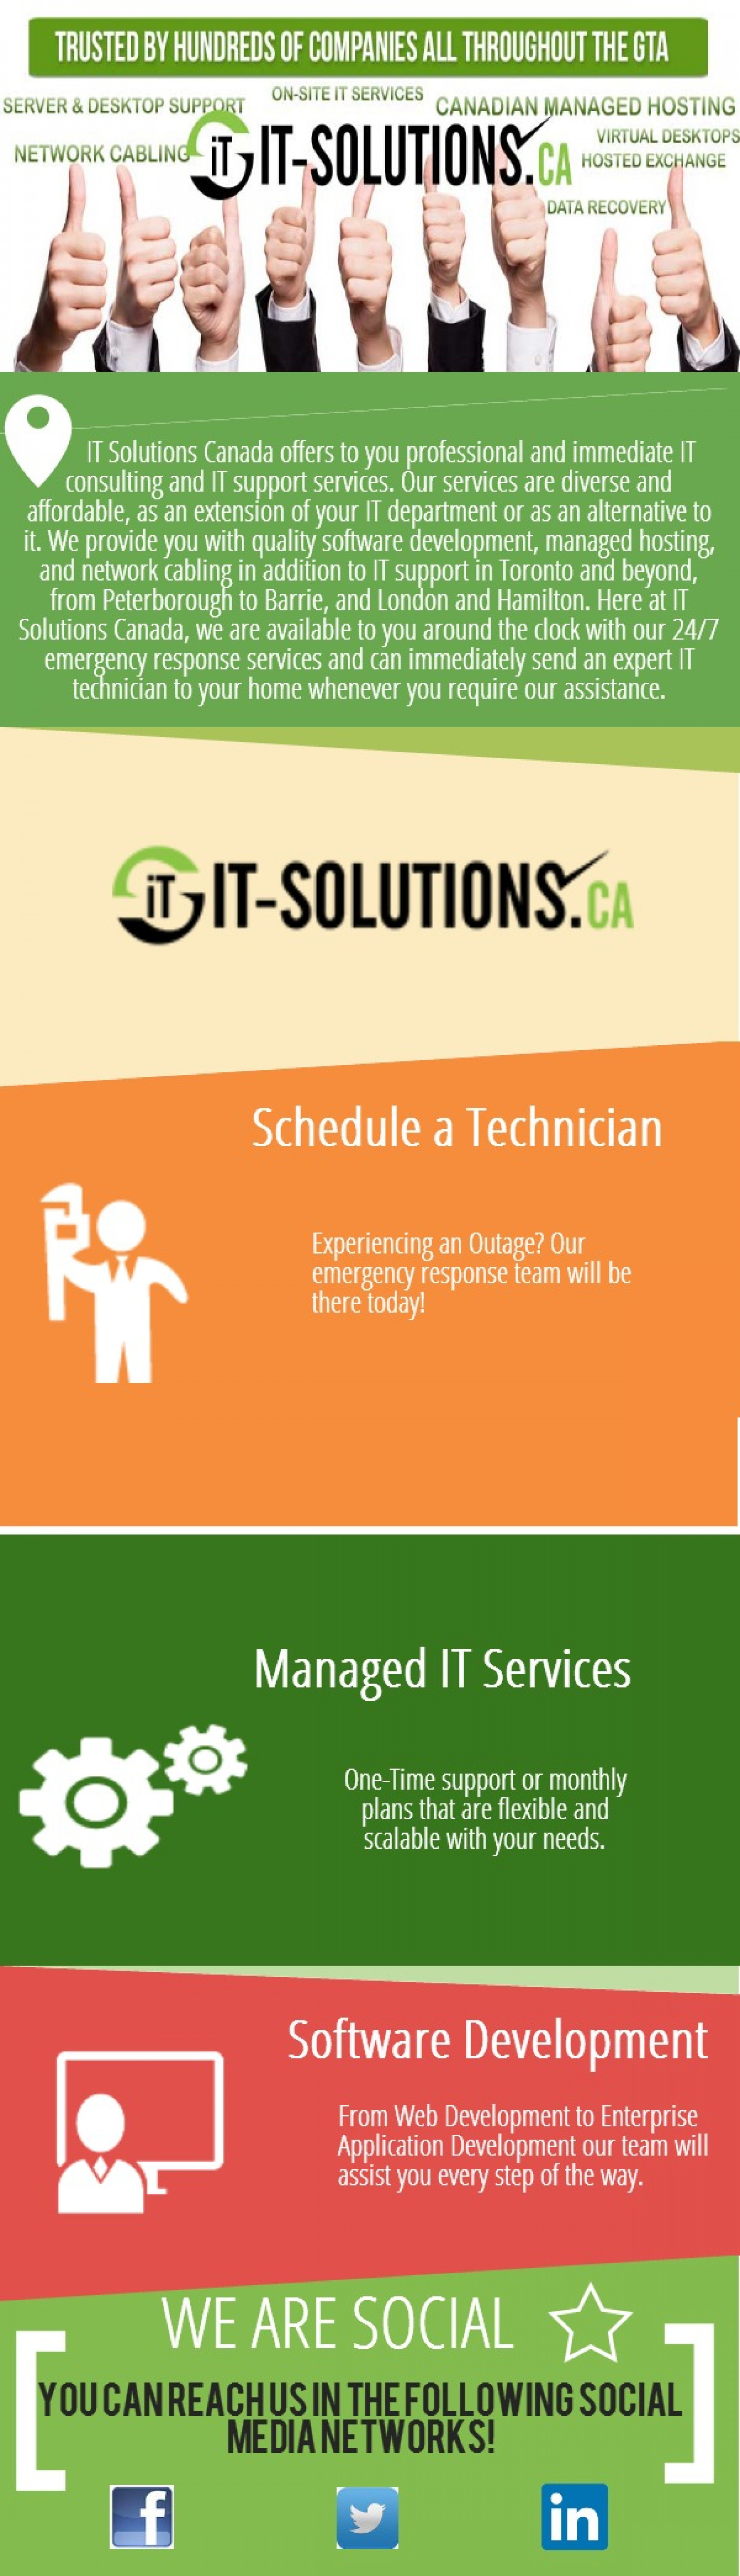 IT-Solutions Infographic